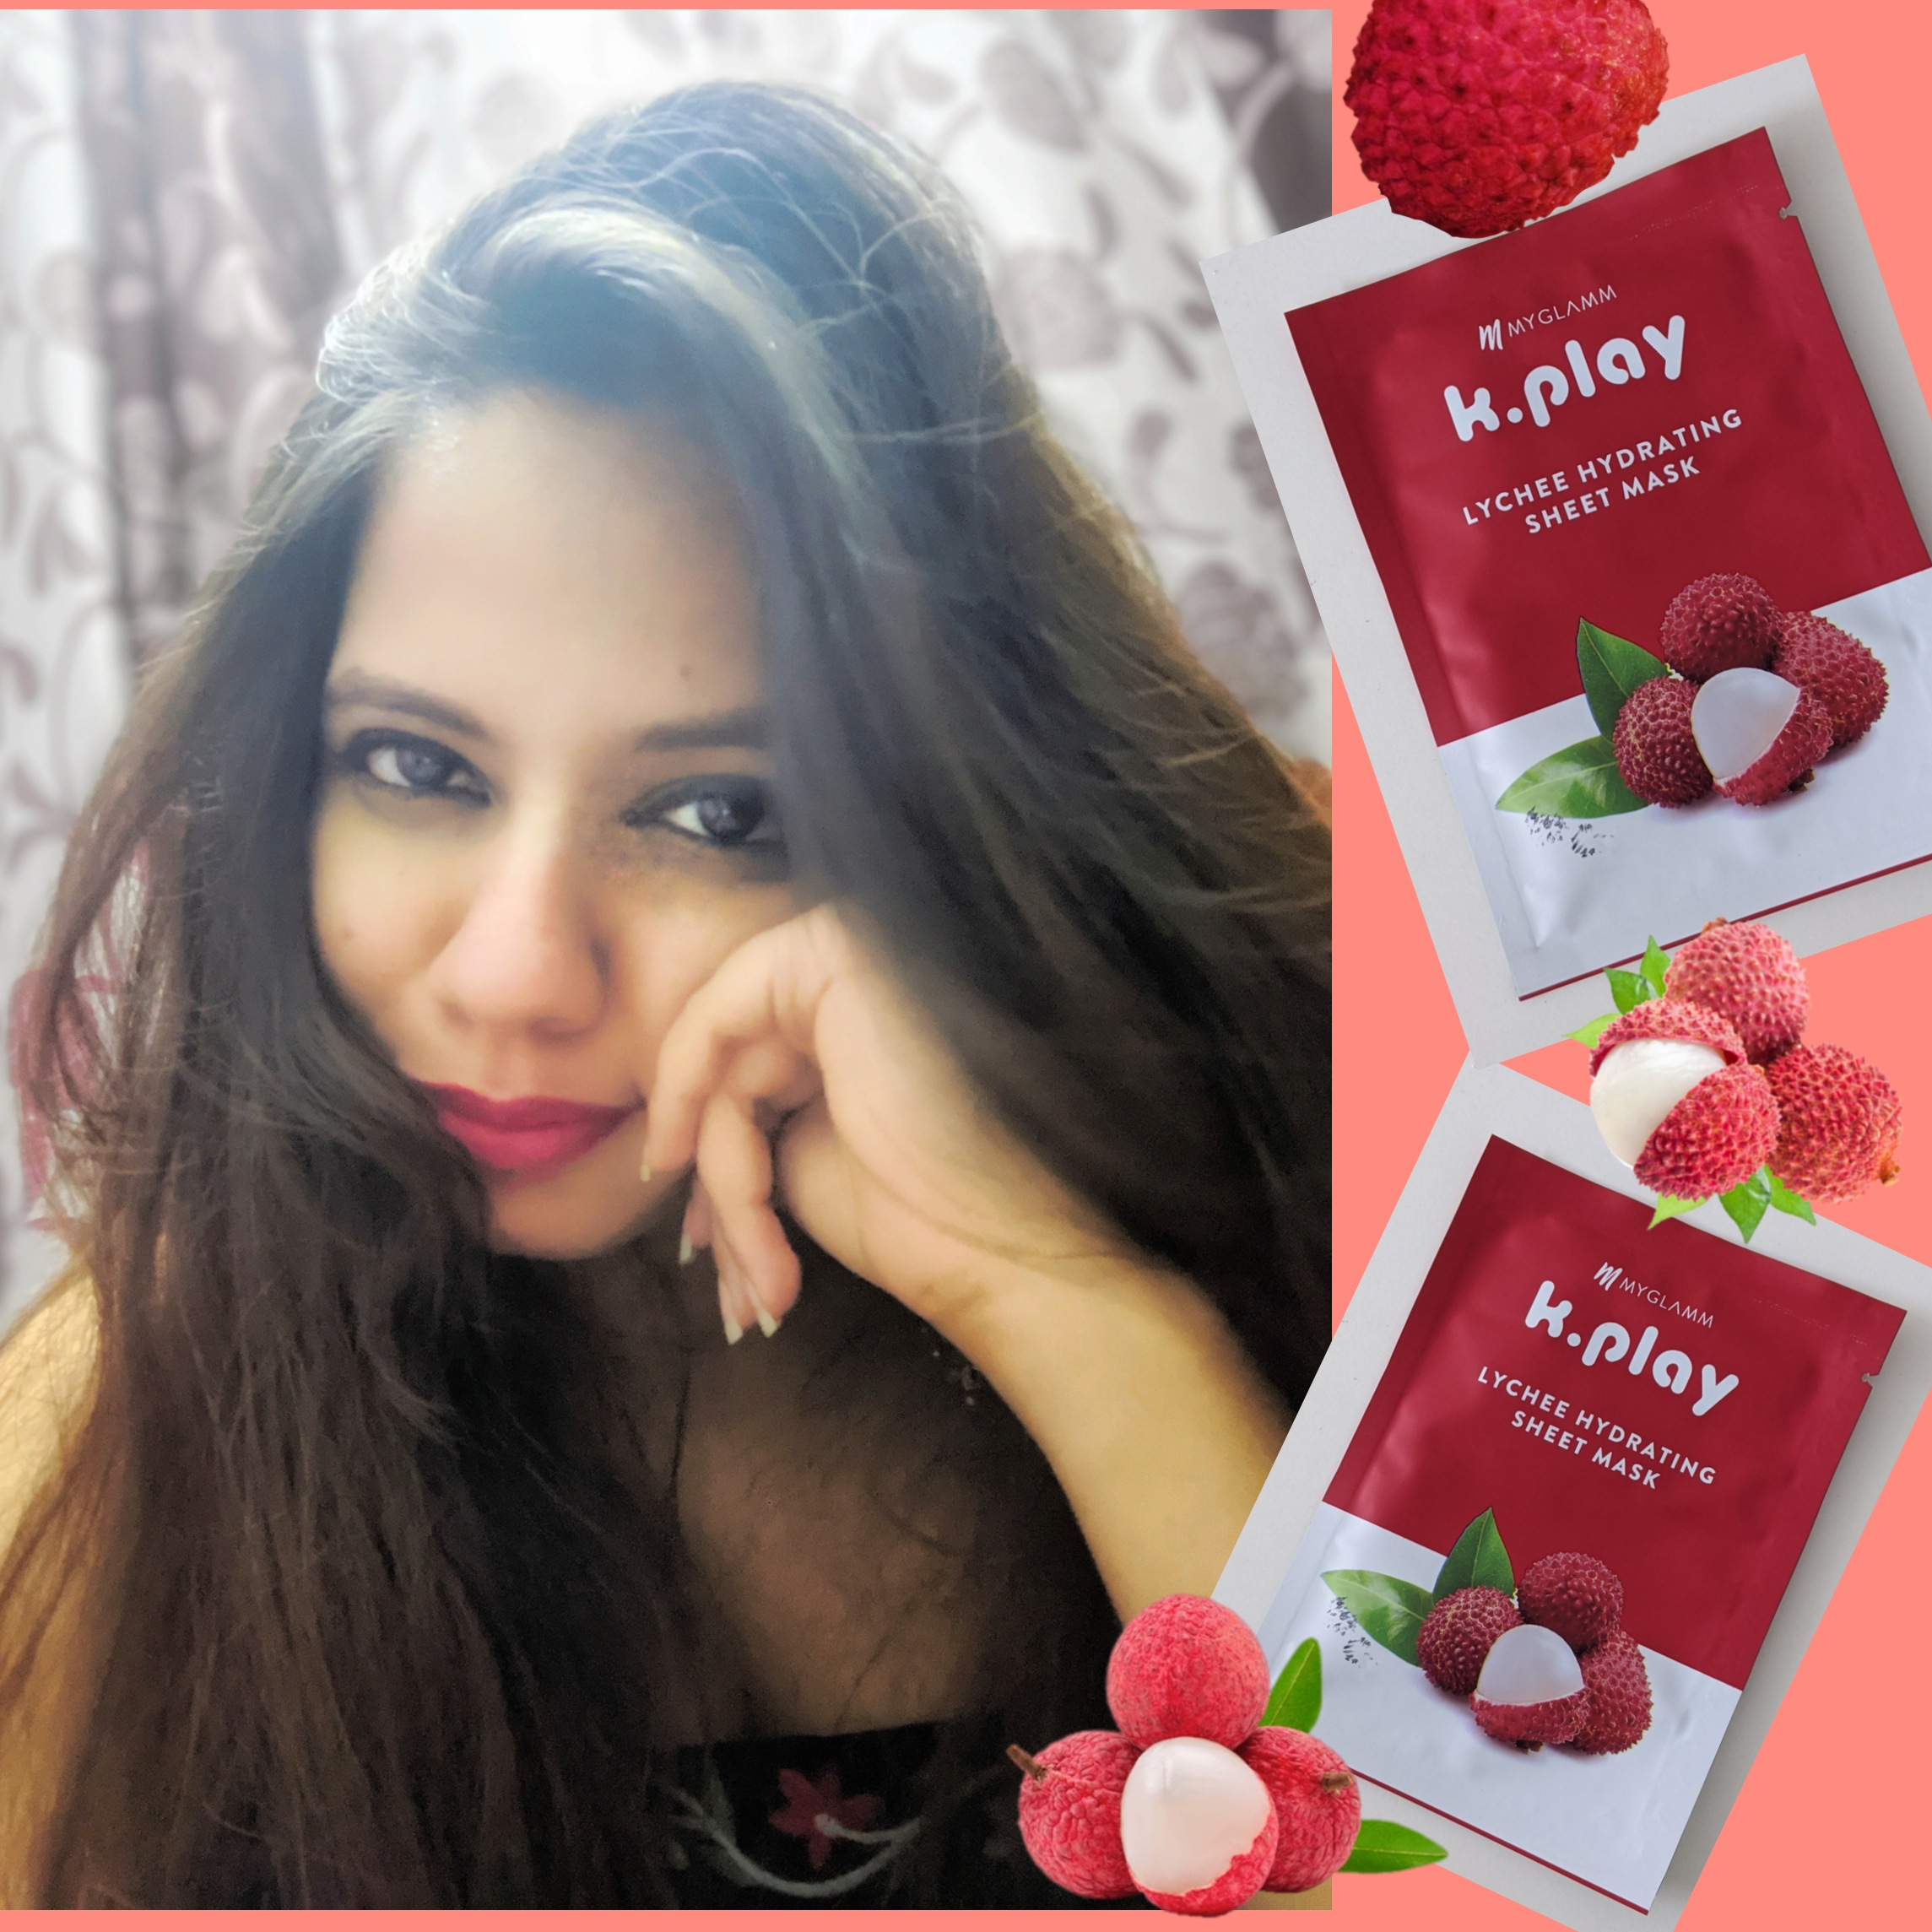 MyGlamm K.Play Lychee Hydrating Sheet Mask -Soft and hydrated skin-By sithara